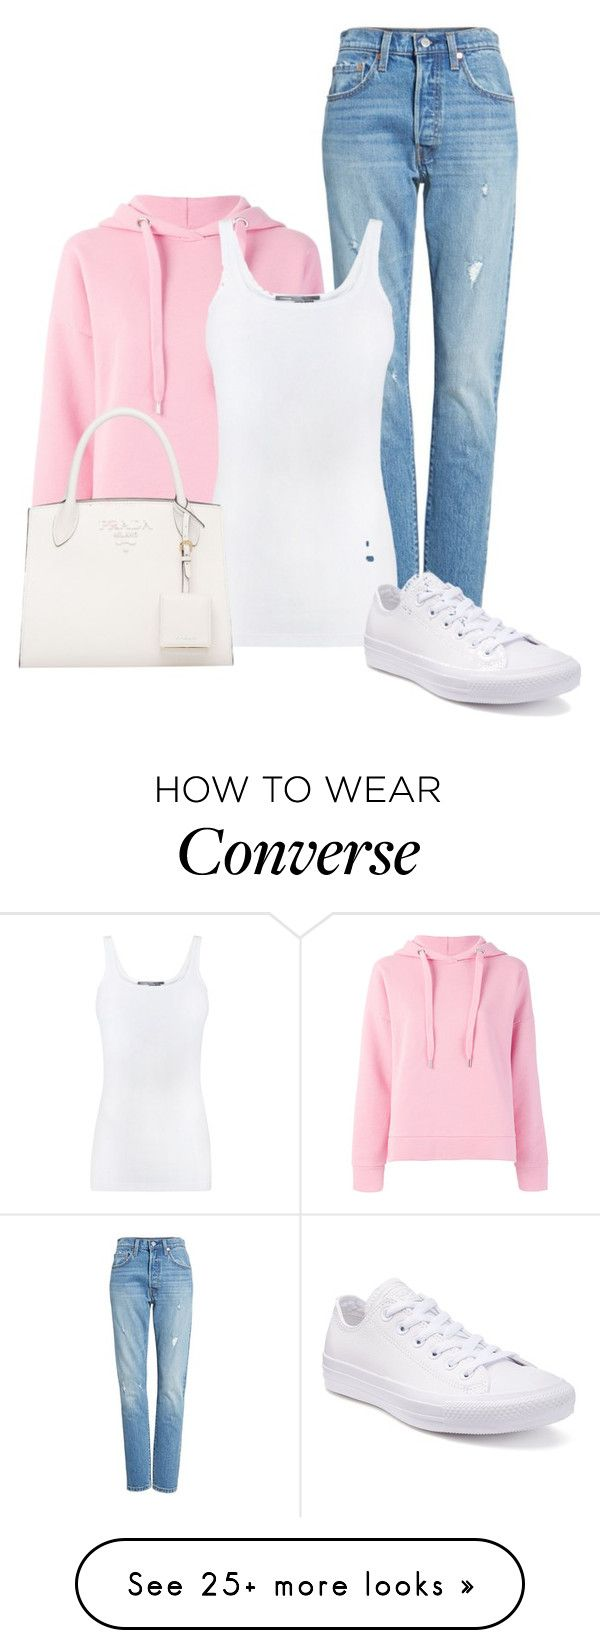 """Untitled #107"" by heal838 on Polyvore featuring Levi's, Closed, Vince and Converse"